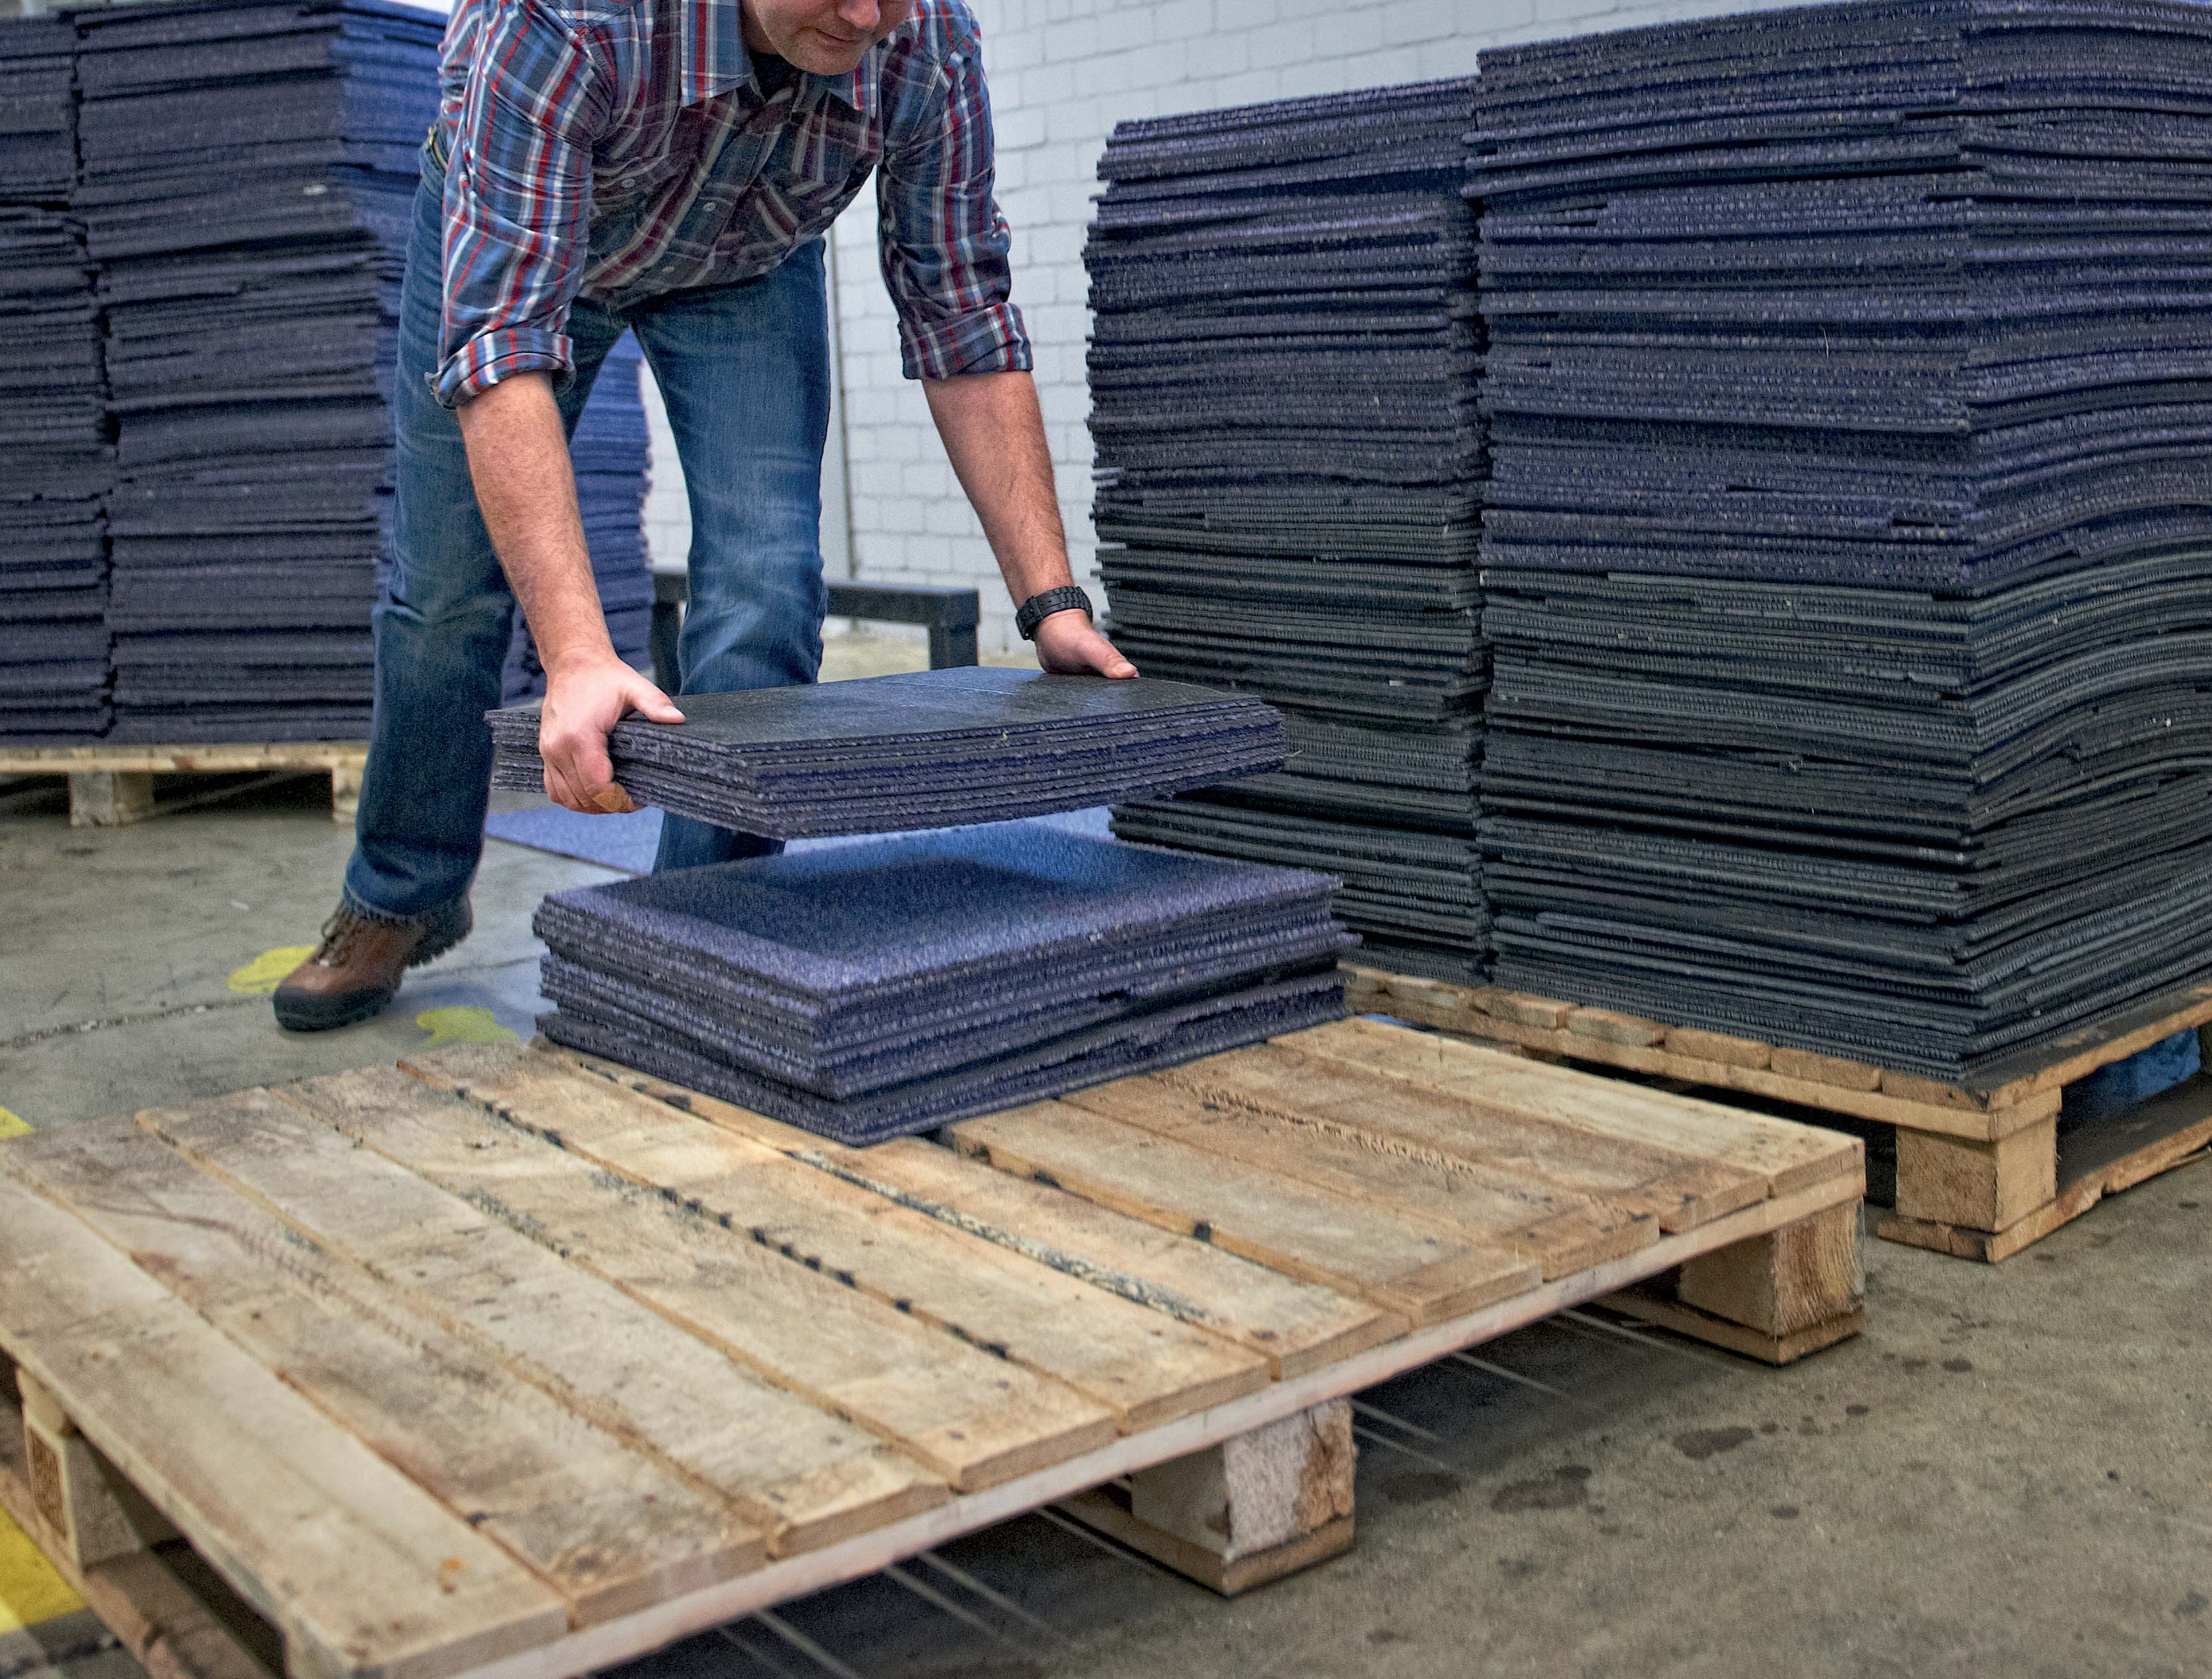 Carpet tile reuse and recycling present opportunities for FM